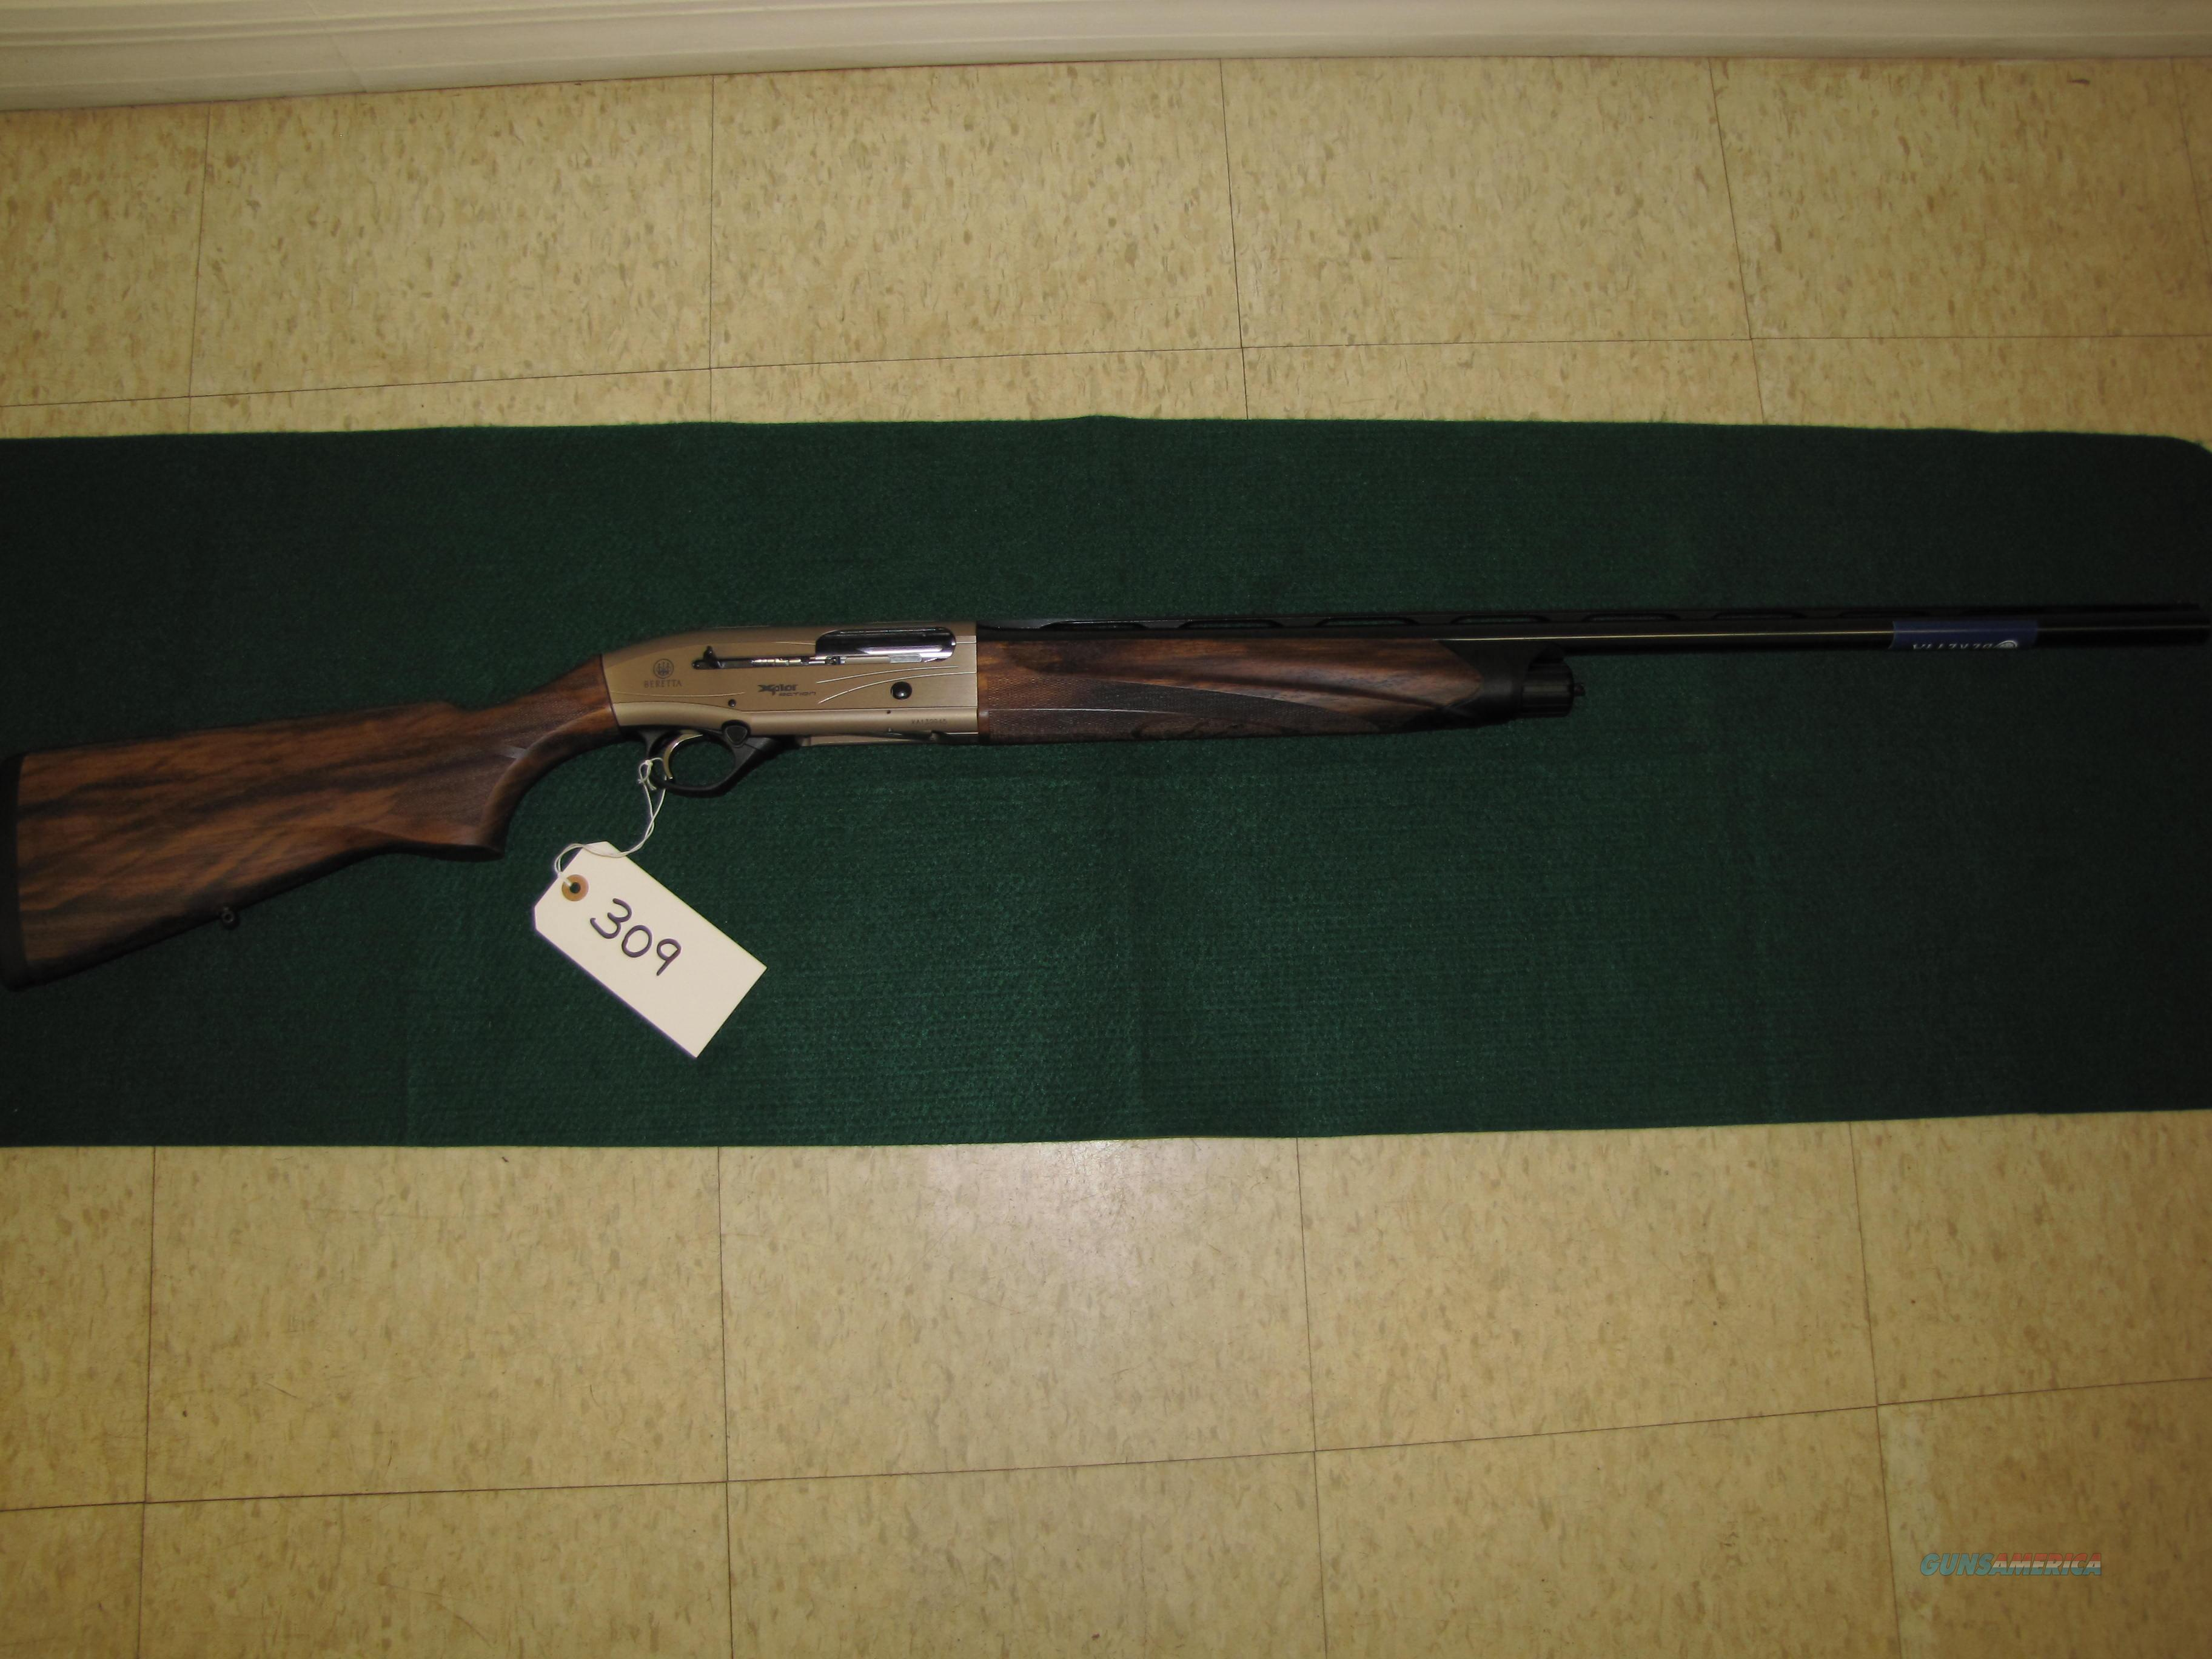 New Beretta A400 Action 28 gauge 28 inch  Guns > Shotguns > Beretta Shotguns > Autoloaders > Hunting